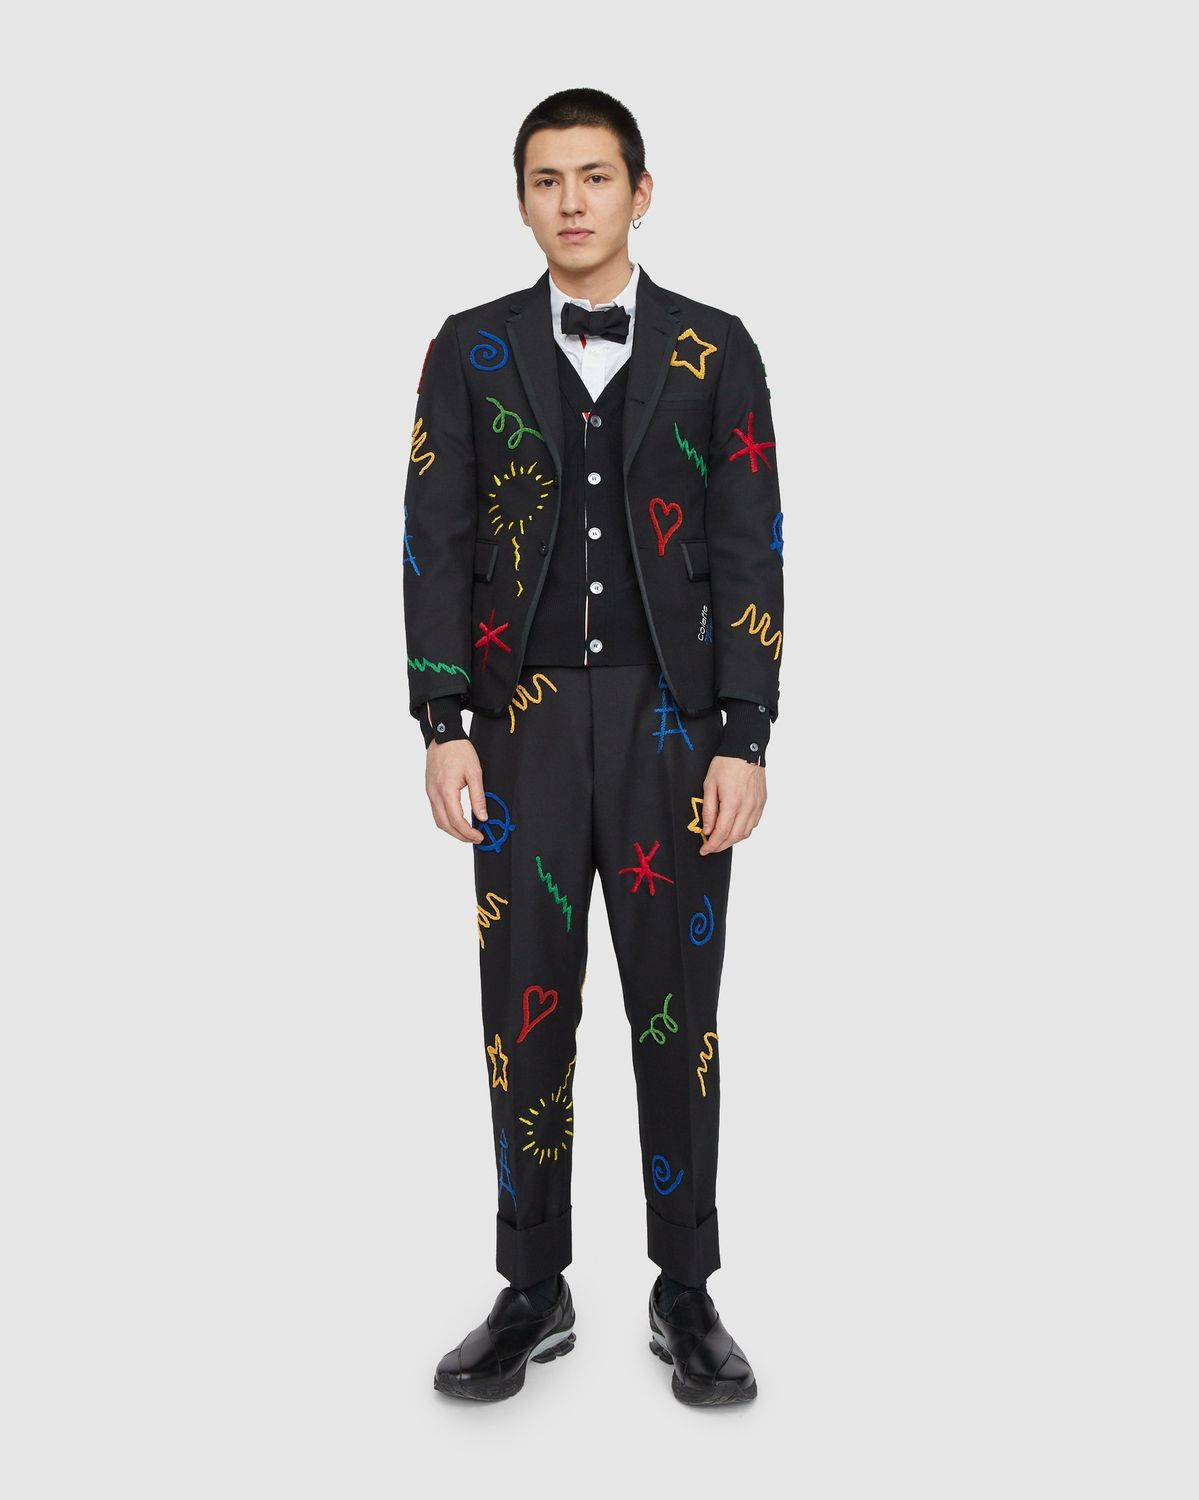 Colette Mon Amour x Thom Browne — Black Embroidered Tux Suit - Image 9